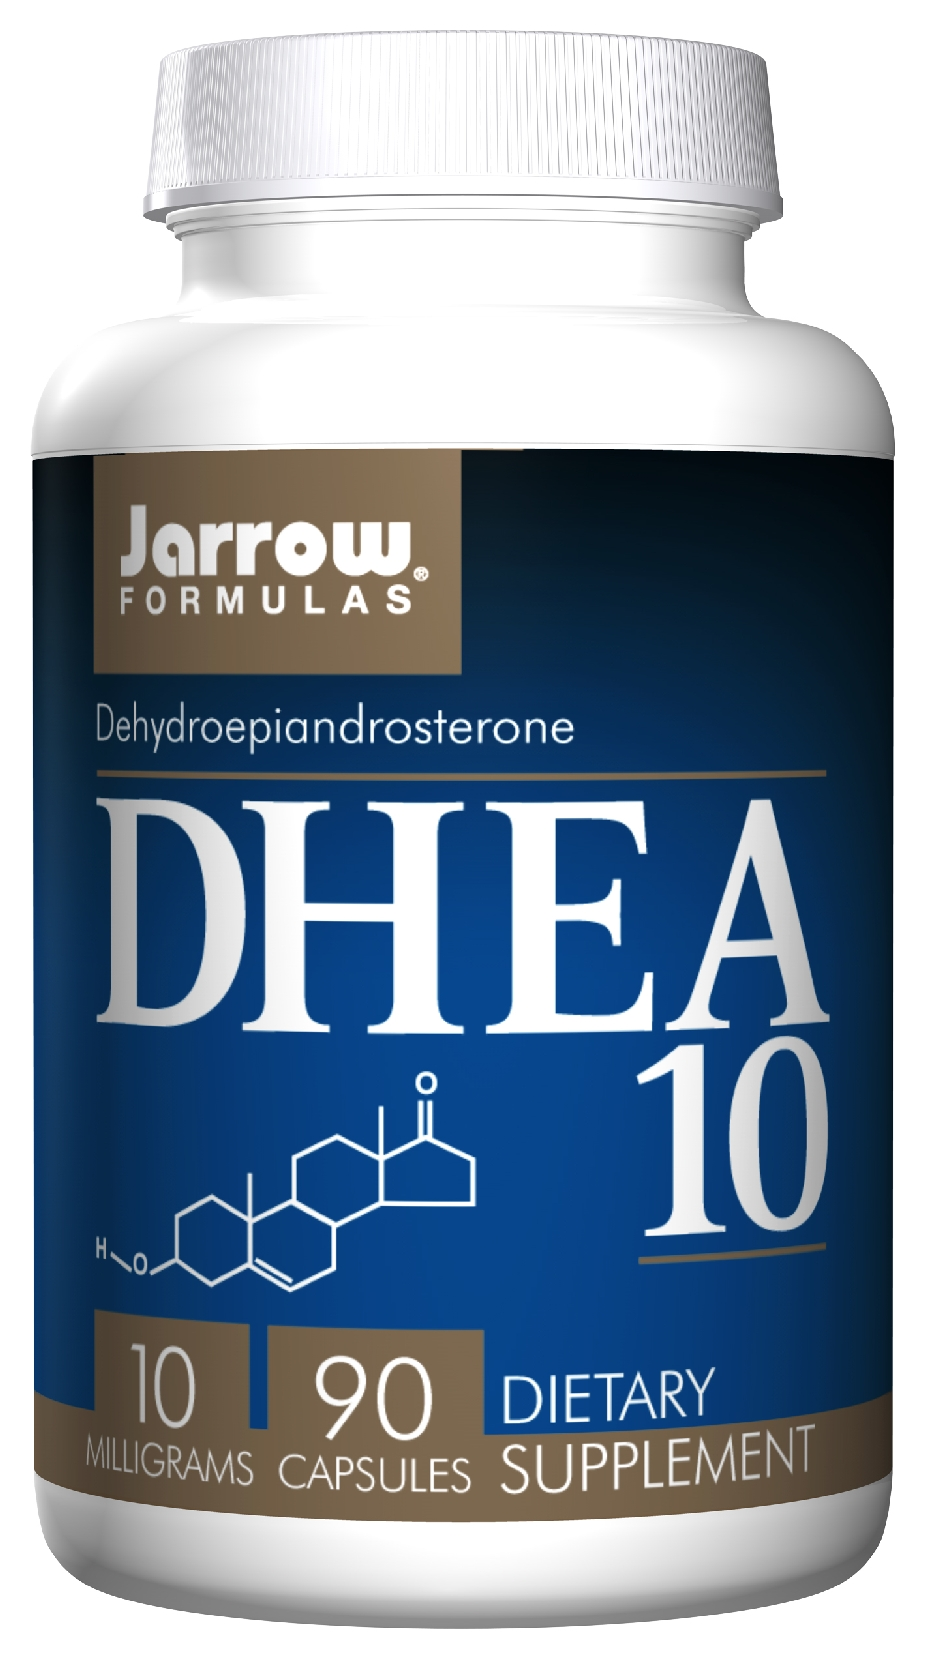 DHEA 10 10 mg 90 caps by Jarrow Formulas